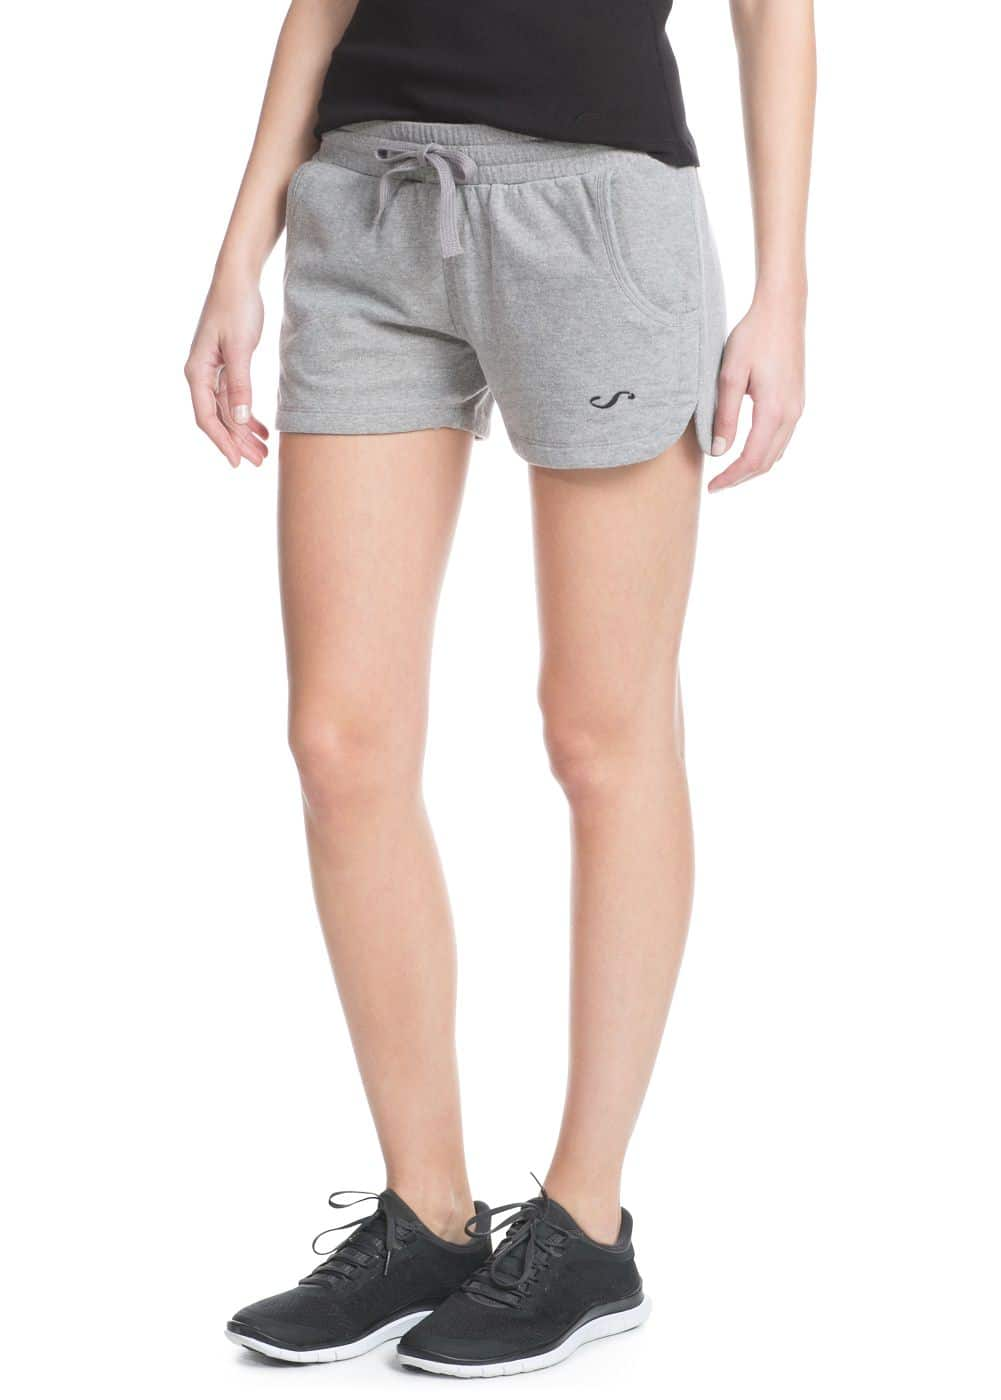 Yoga - Two-pocket stretch shorts